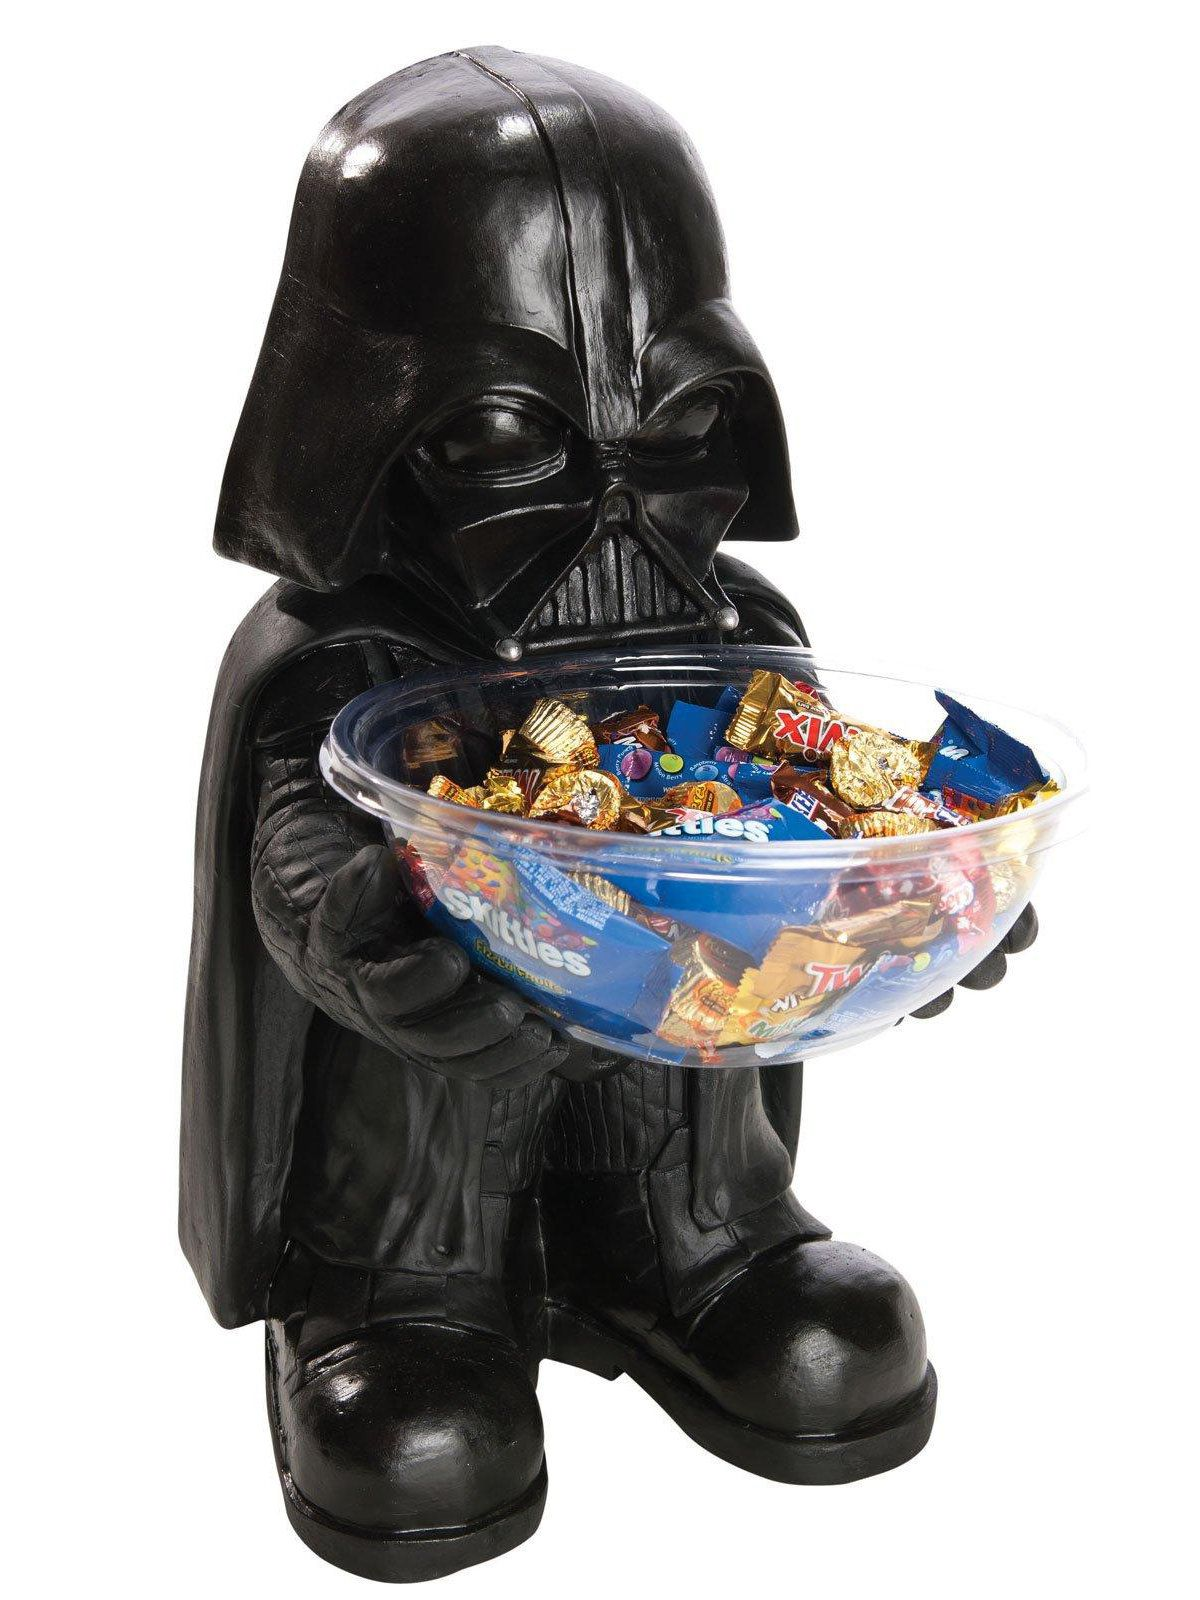 star wars - darth vader candy bowl and holder - halloween